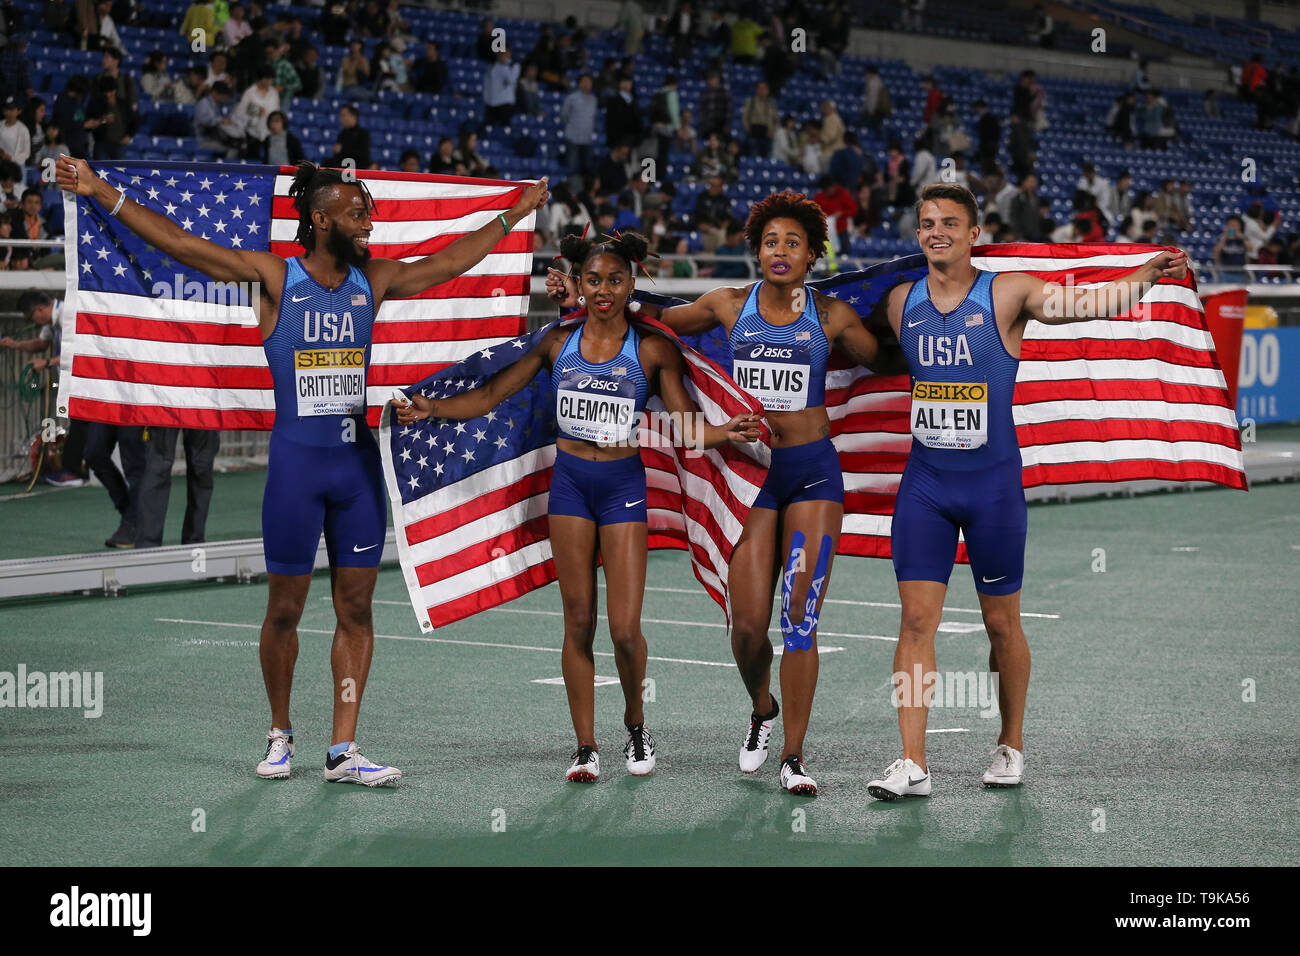 YOKOHAMA, JAPAN - MAY 10: Freddie Crittenden, Christina Clemons, Sharika Nelvis and Devon Allen of the USA after they won the mixed shuttle hurdles relay final during Day 1 of the 2019 IAAF World Relay Championships at the Nissan Stadium on Saturday May 11, 2019 in Yokohama, Japan. (Photo by Roger Sedres for the IAAF) - Stock Image